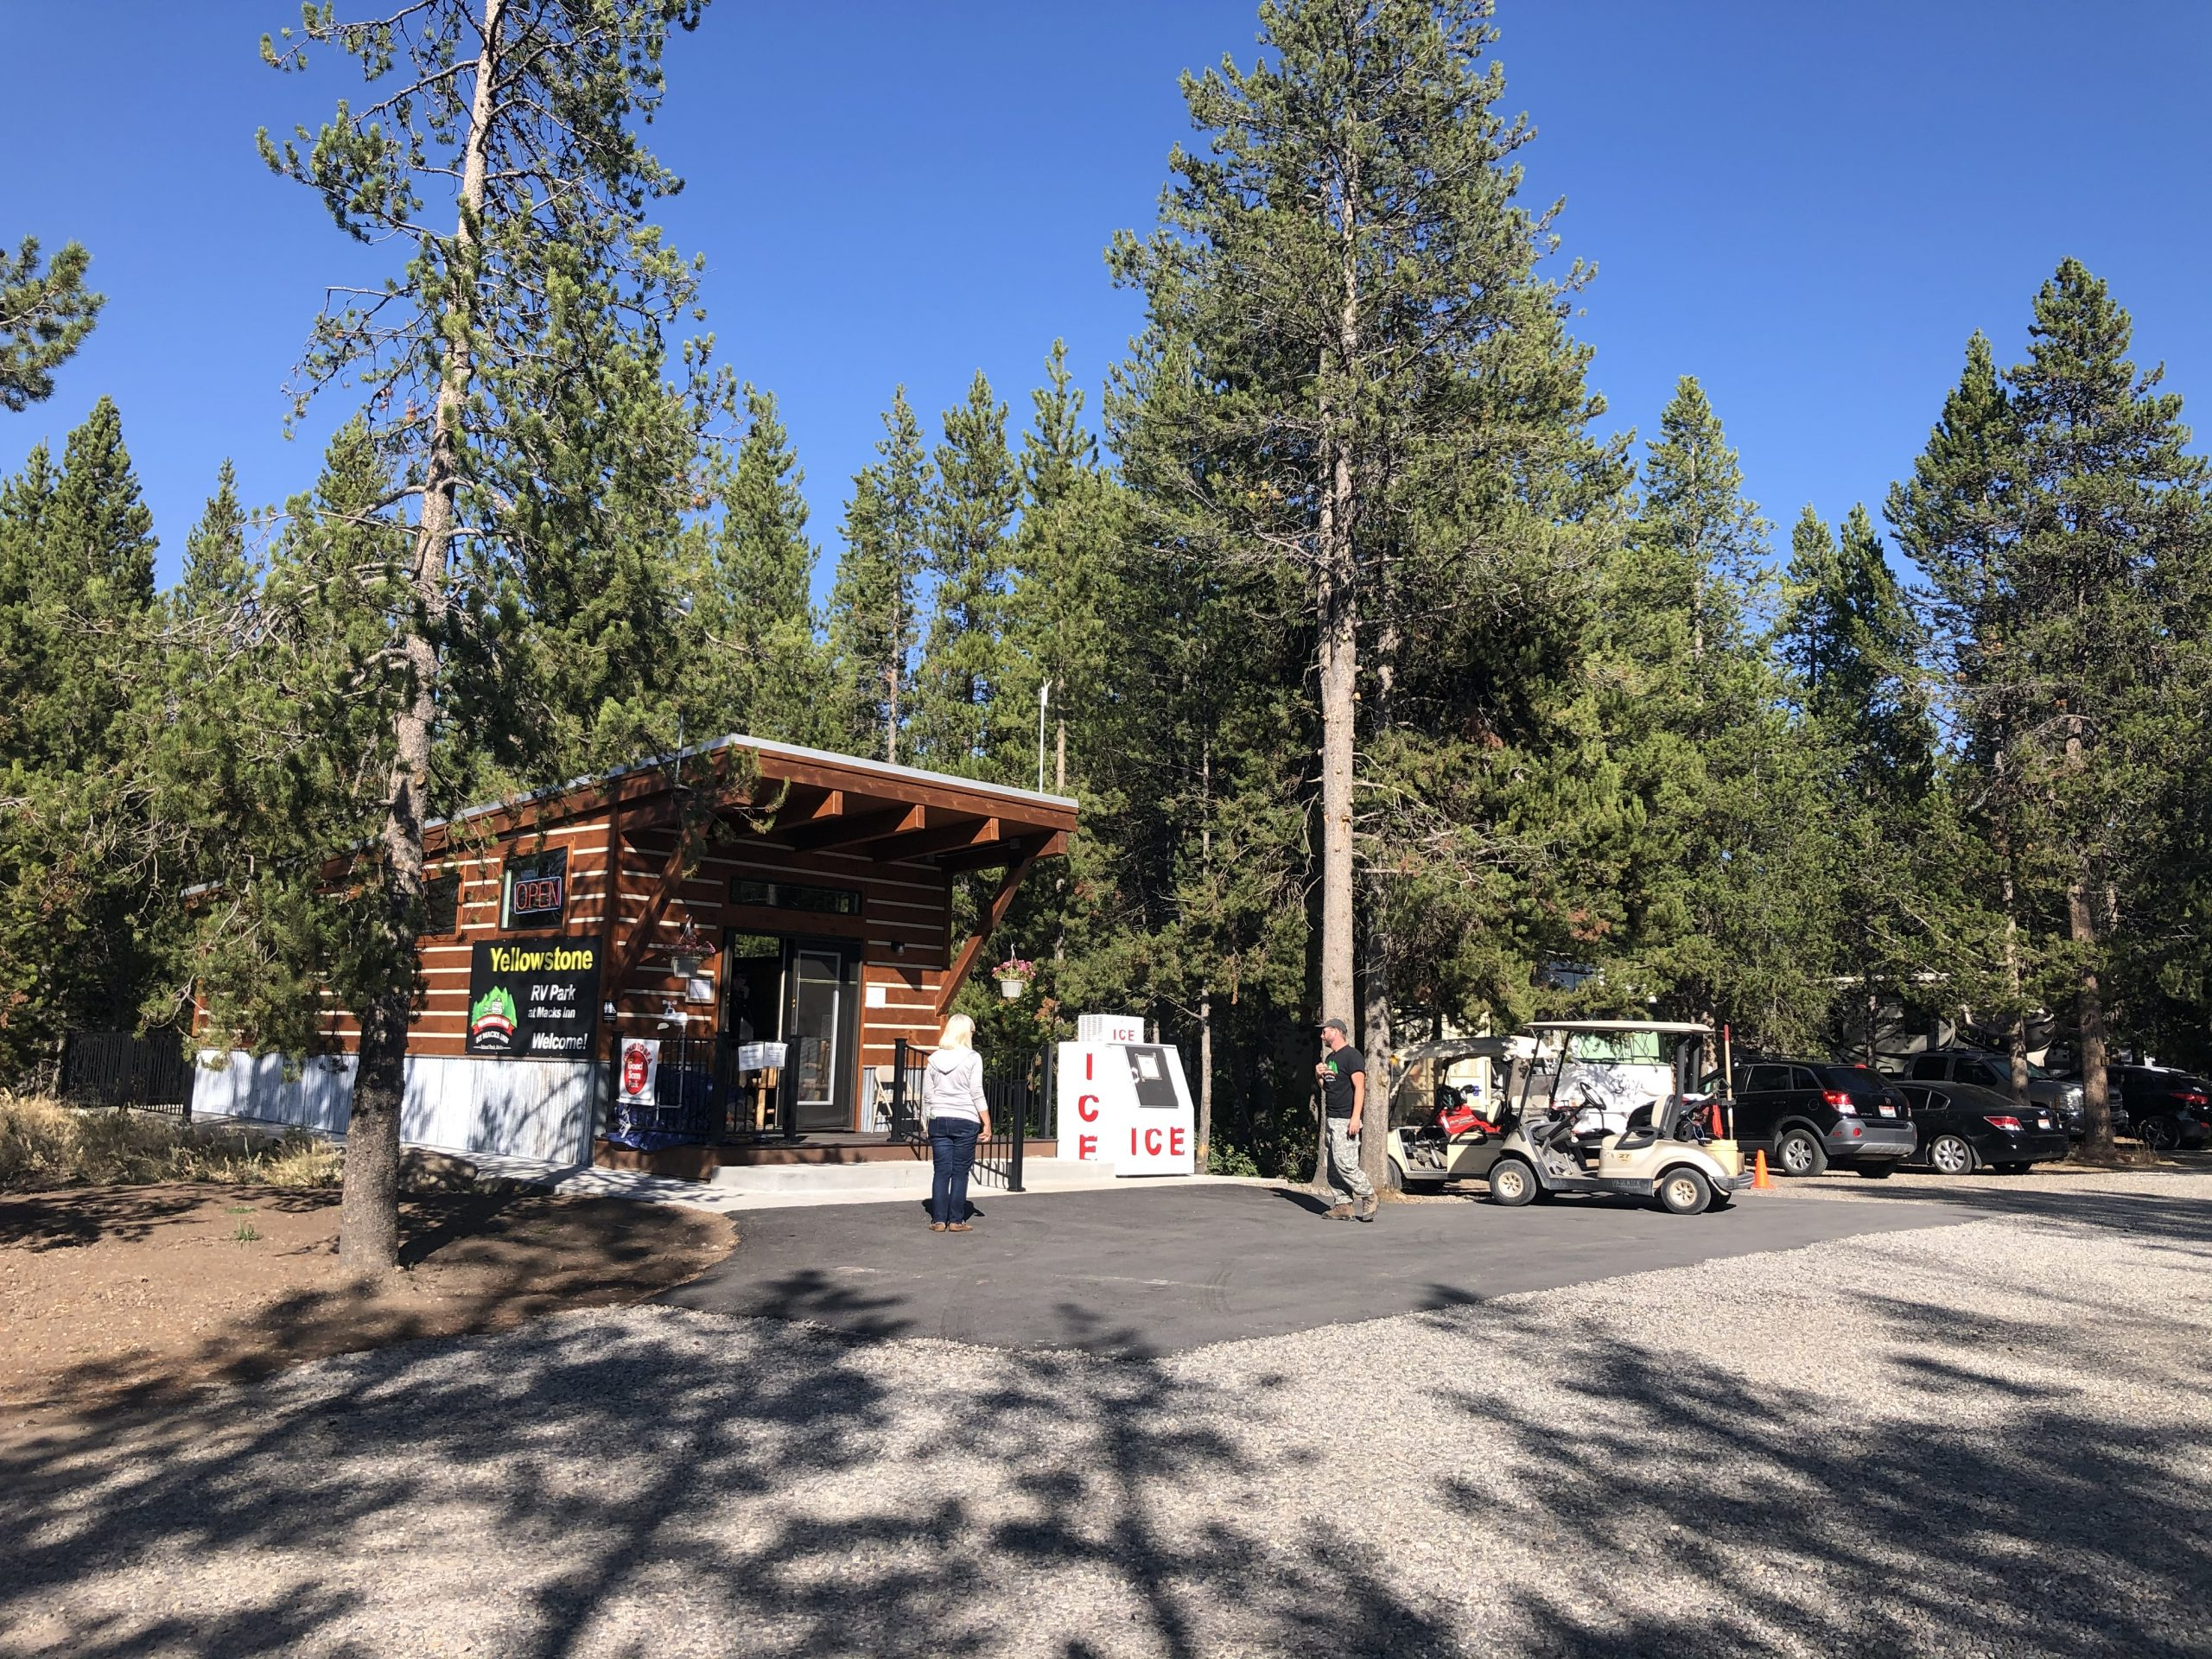 Yellowstone RV Park office and store